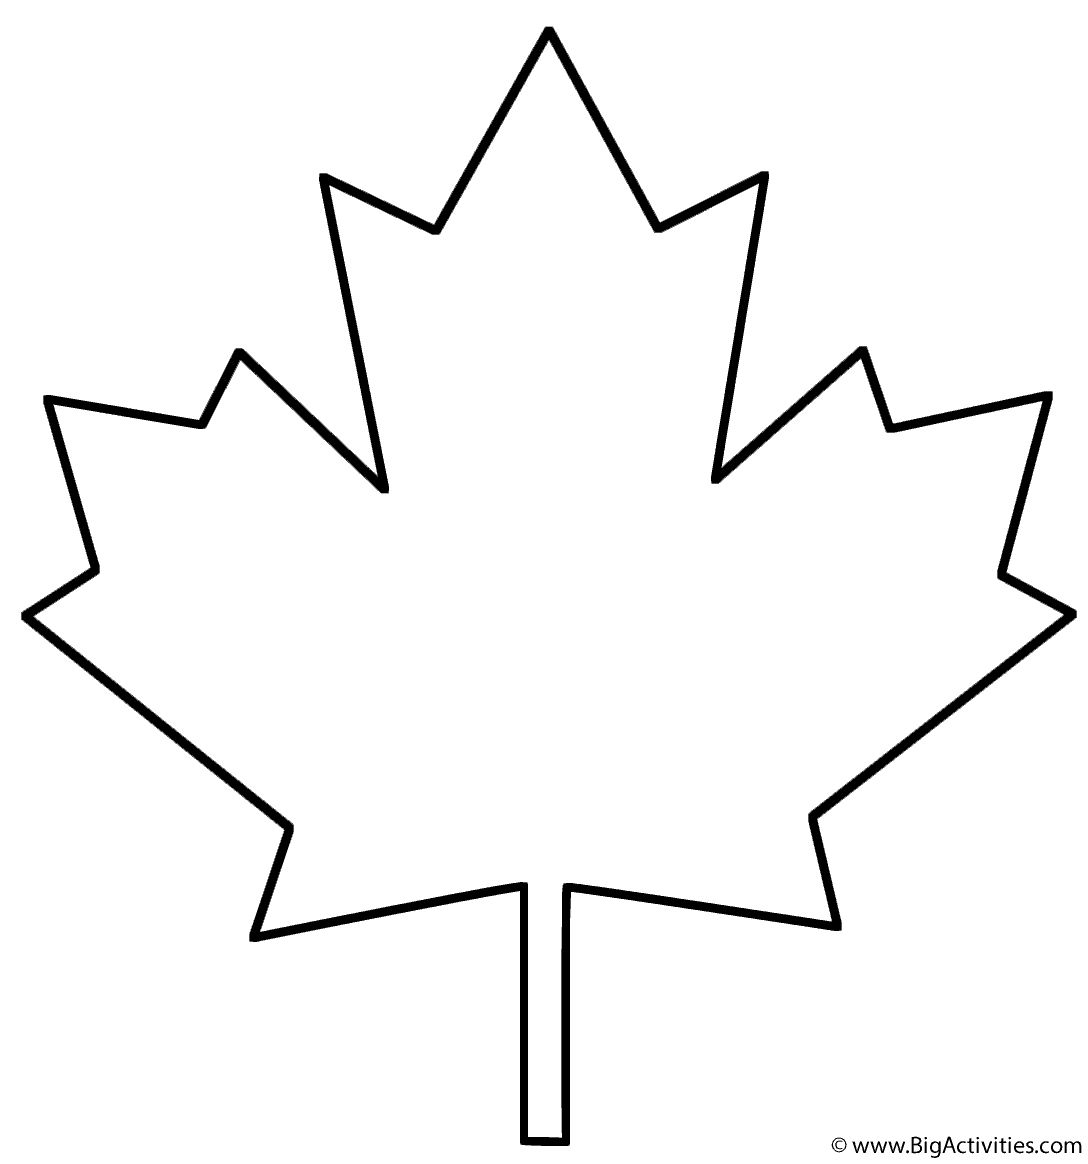 27 Inspiration Picture Of Leaf Coloring Page Entitlementtrap Com Maple Leaf Template Leaf Coloring Page Leaves Template Free Printable